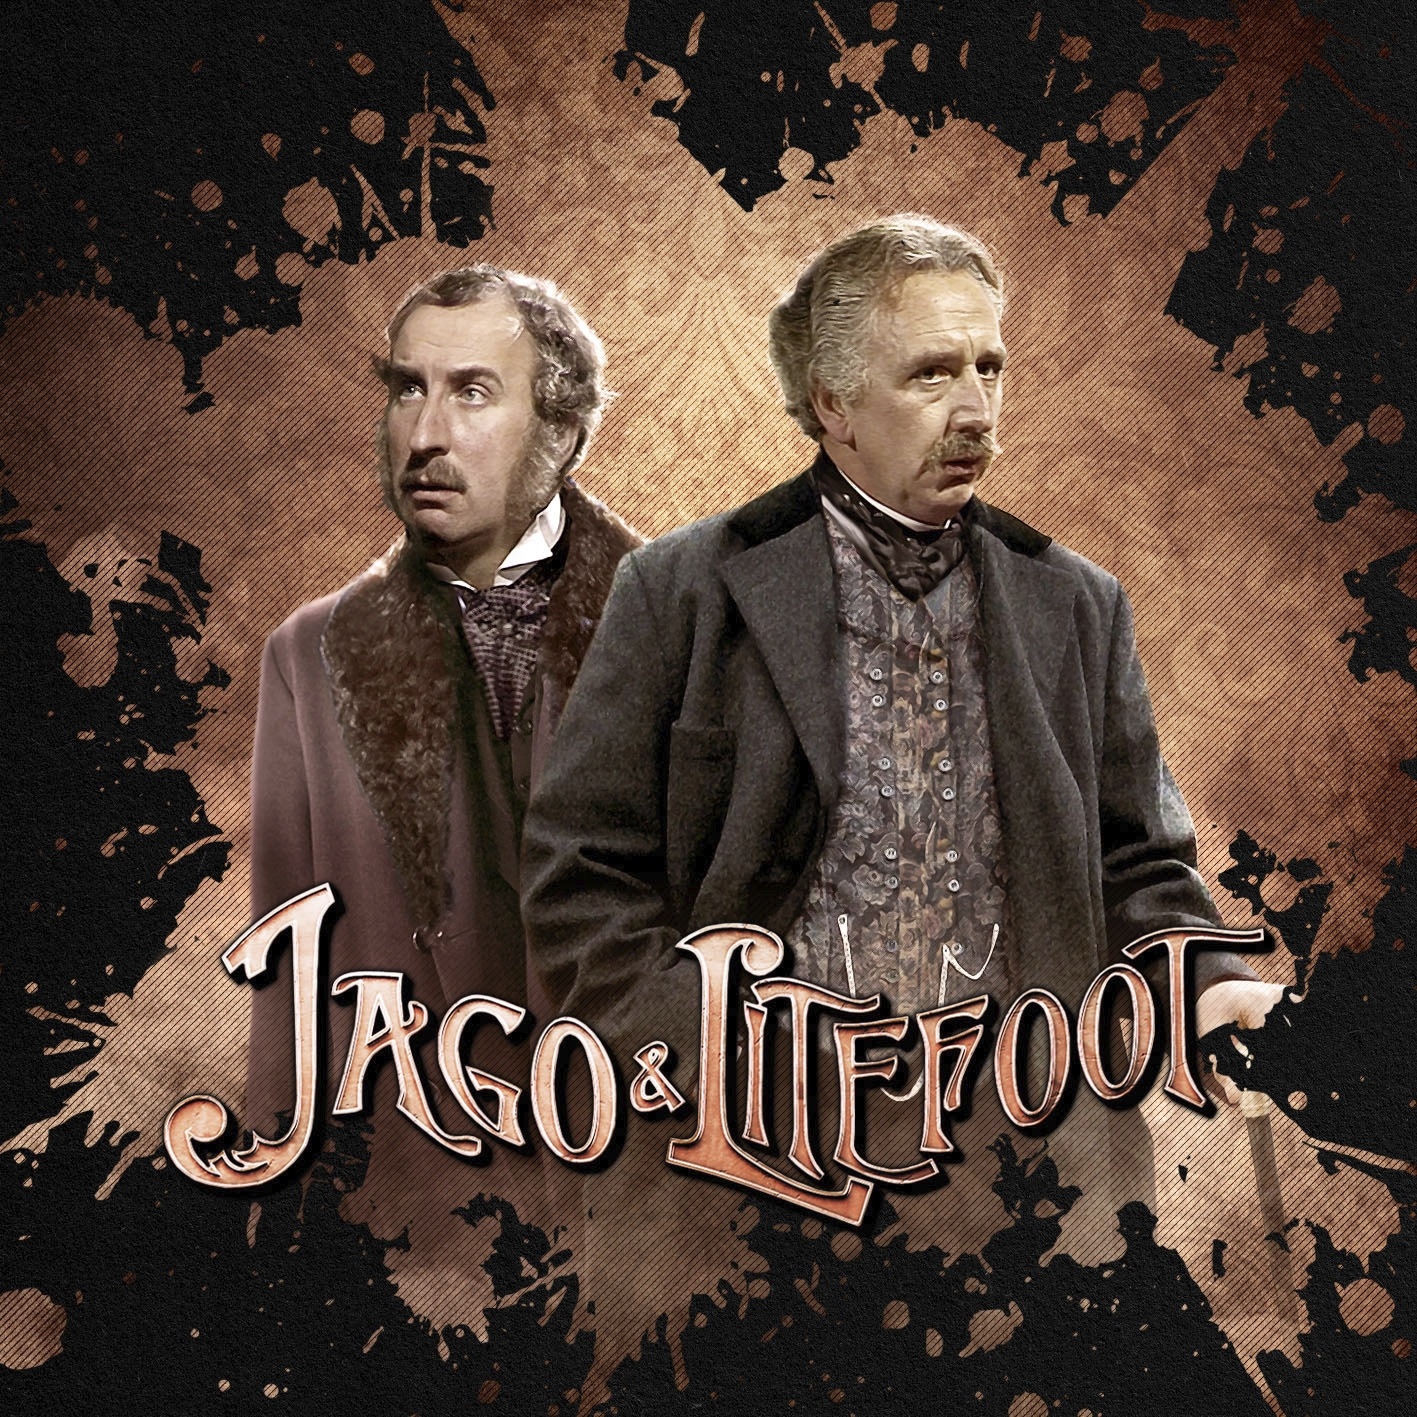 Big Finish Announces Free Weekly Downloads and Discounts, Starting with Jago & Litefoot!